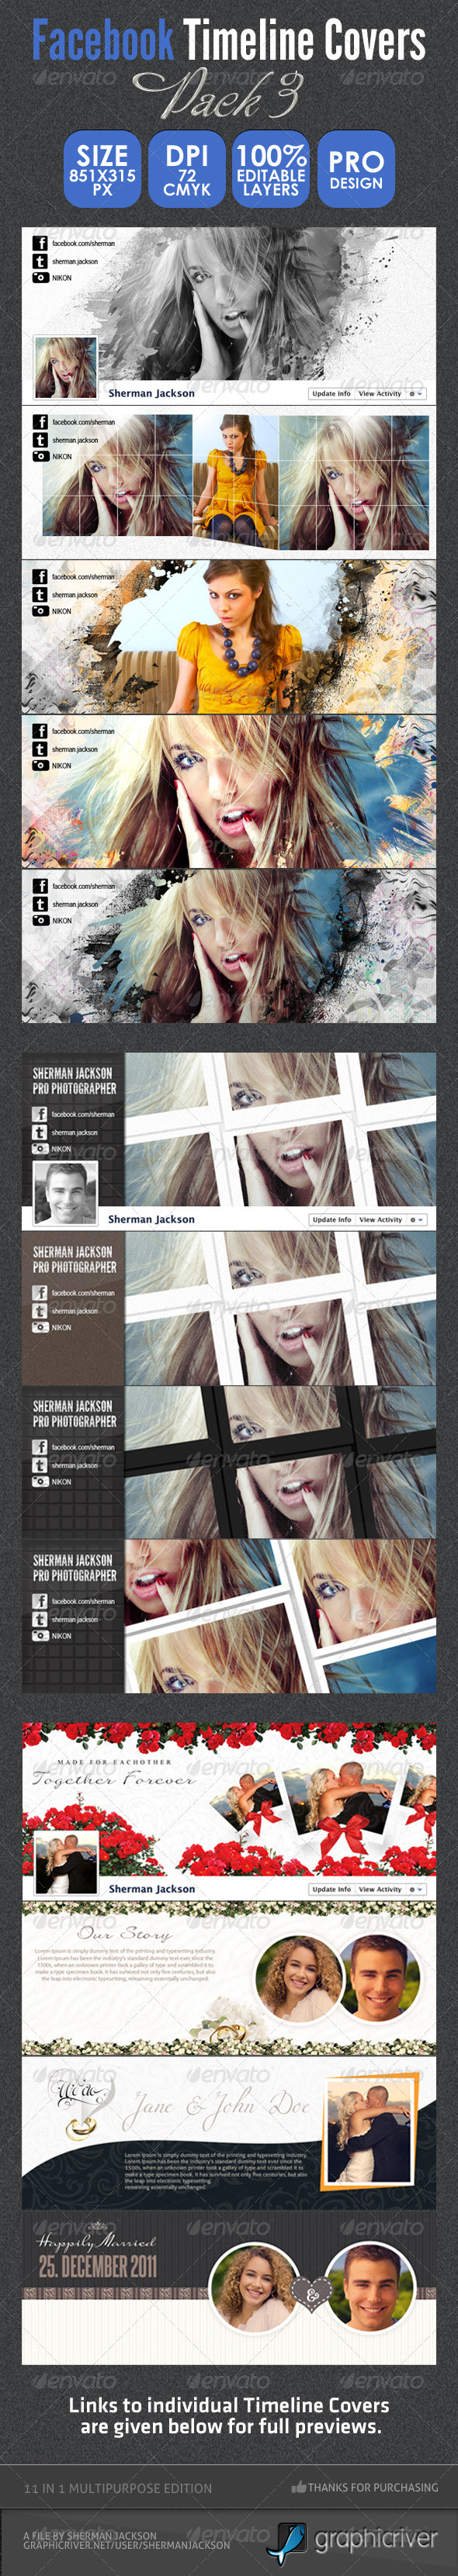 Facebook Timeline Bundle Pack - 3 - Facebook Timeline Covers Social Media